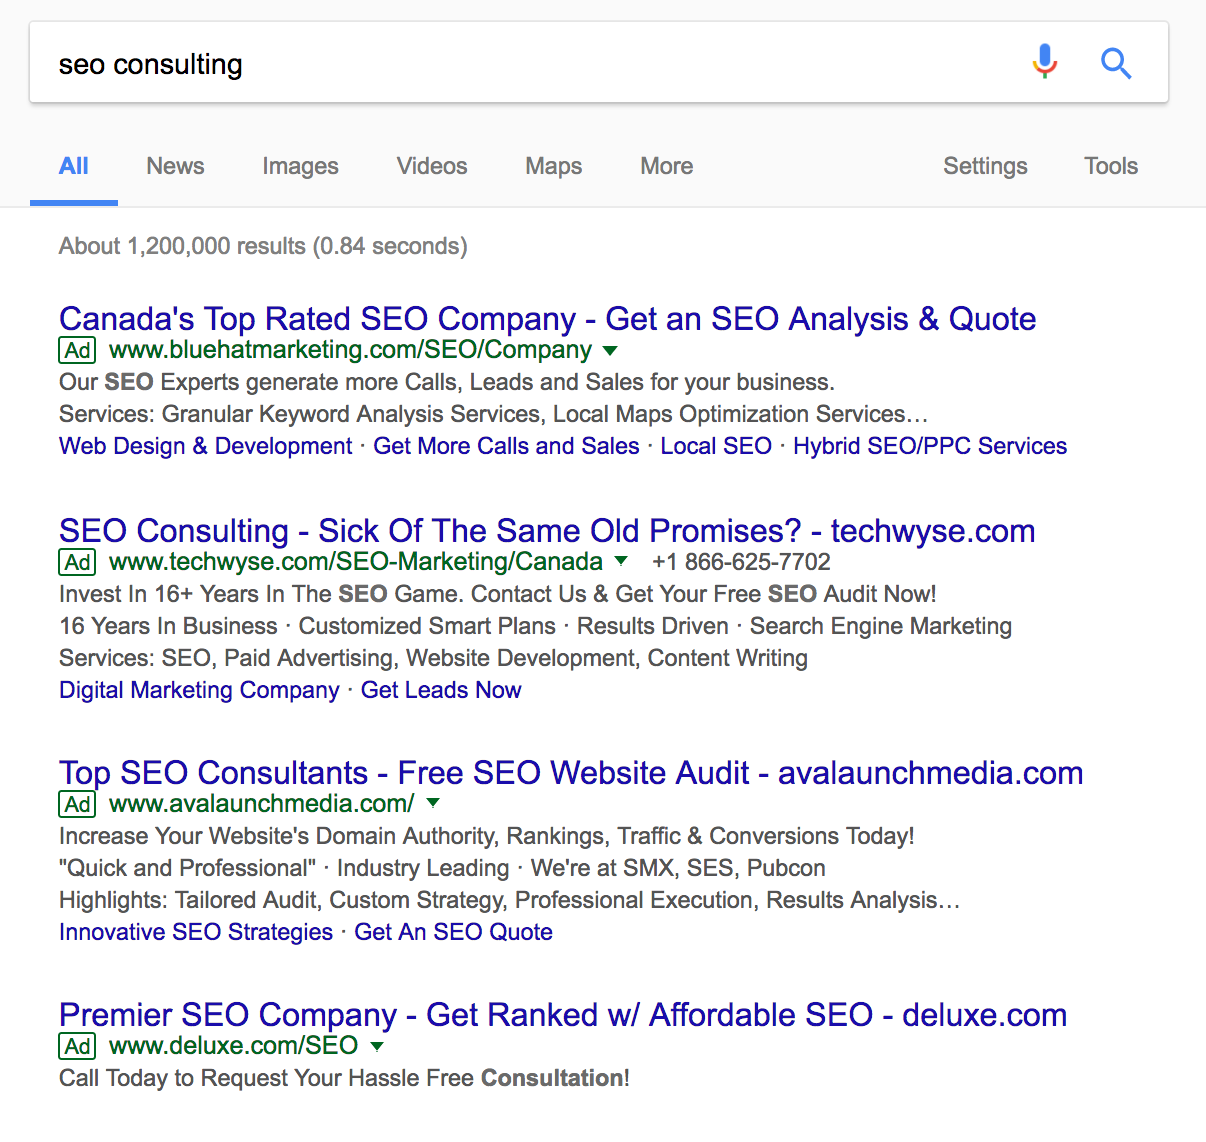 Advanced SEO techniques find keyterms to rank for